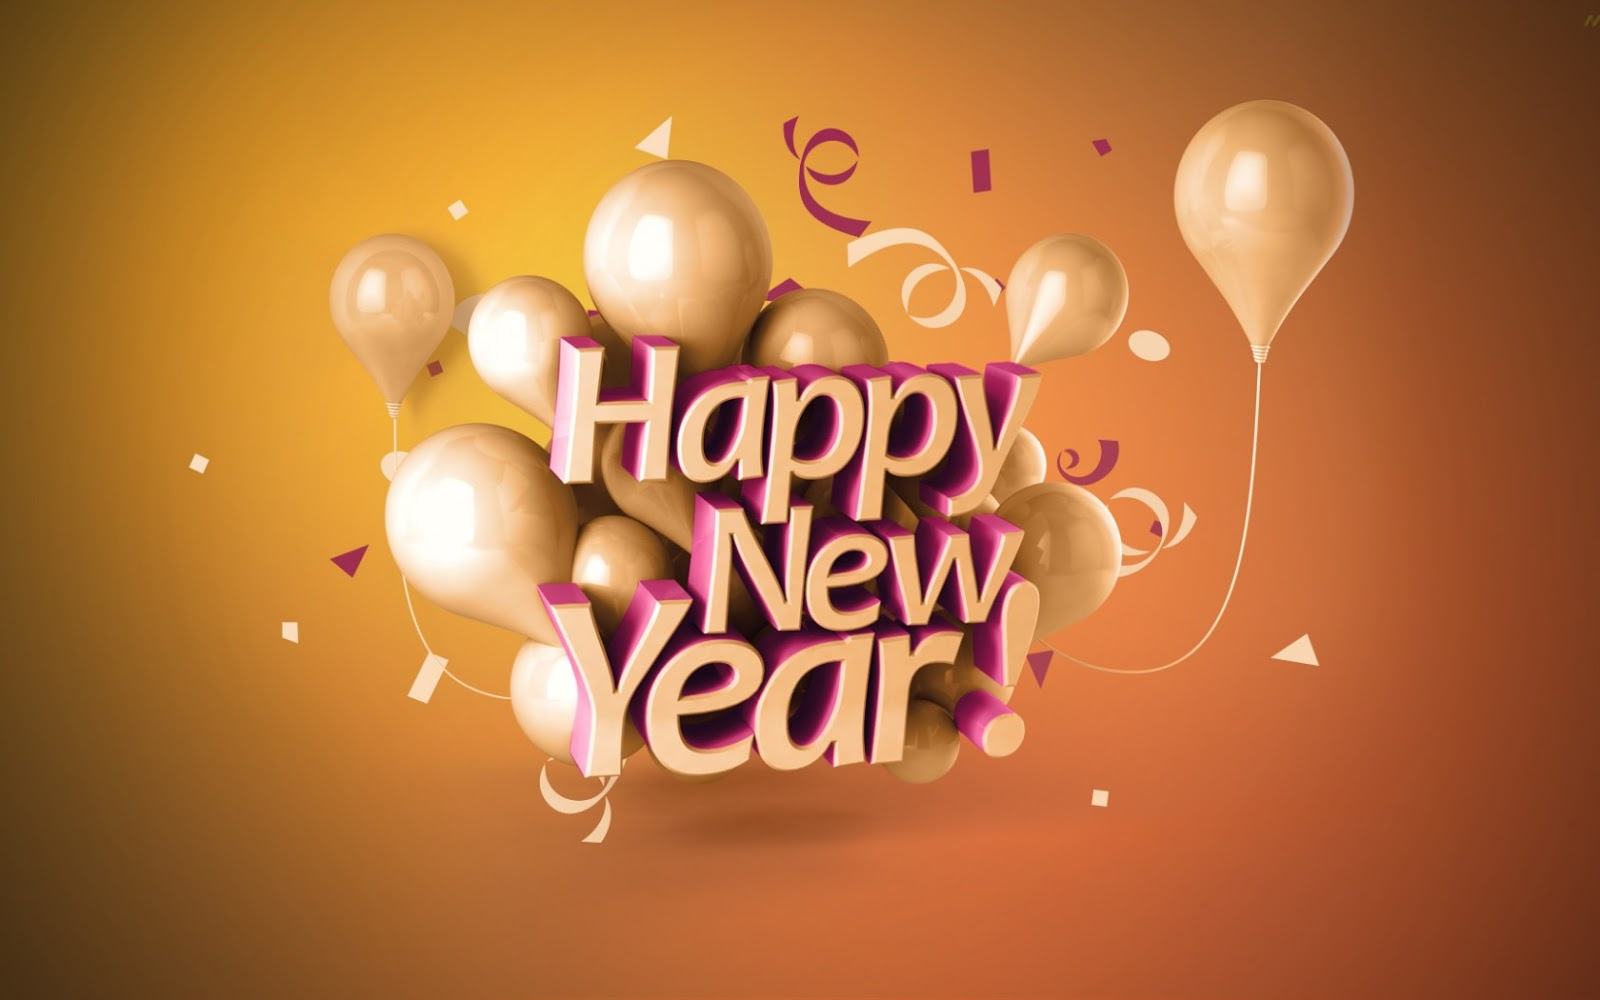 Happy New Year 2017 Latest Happy New Year Wishes 2017 For Friends